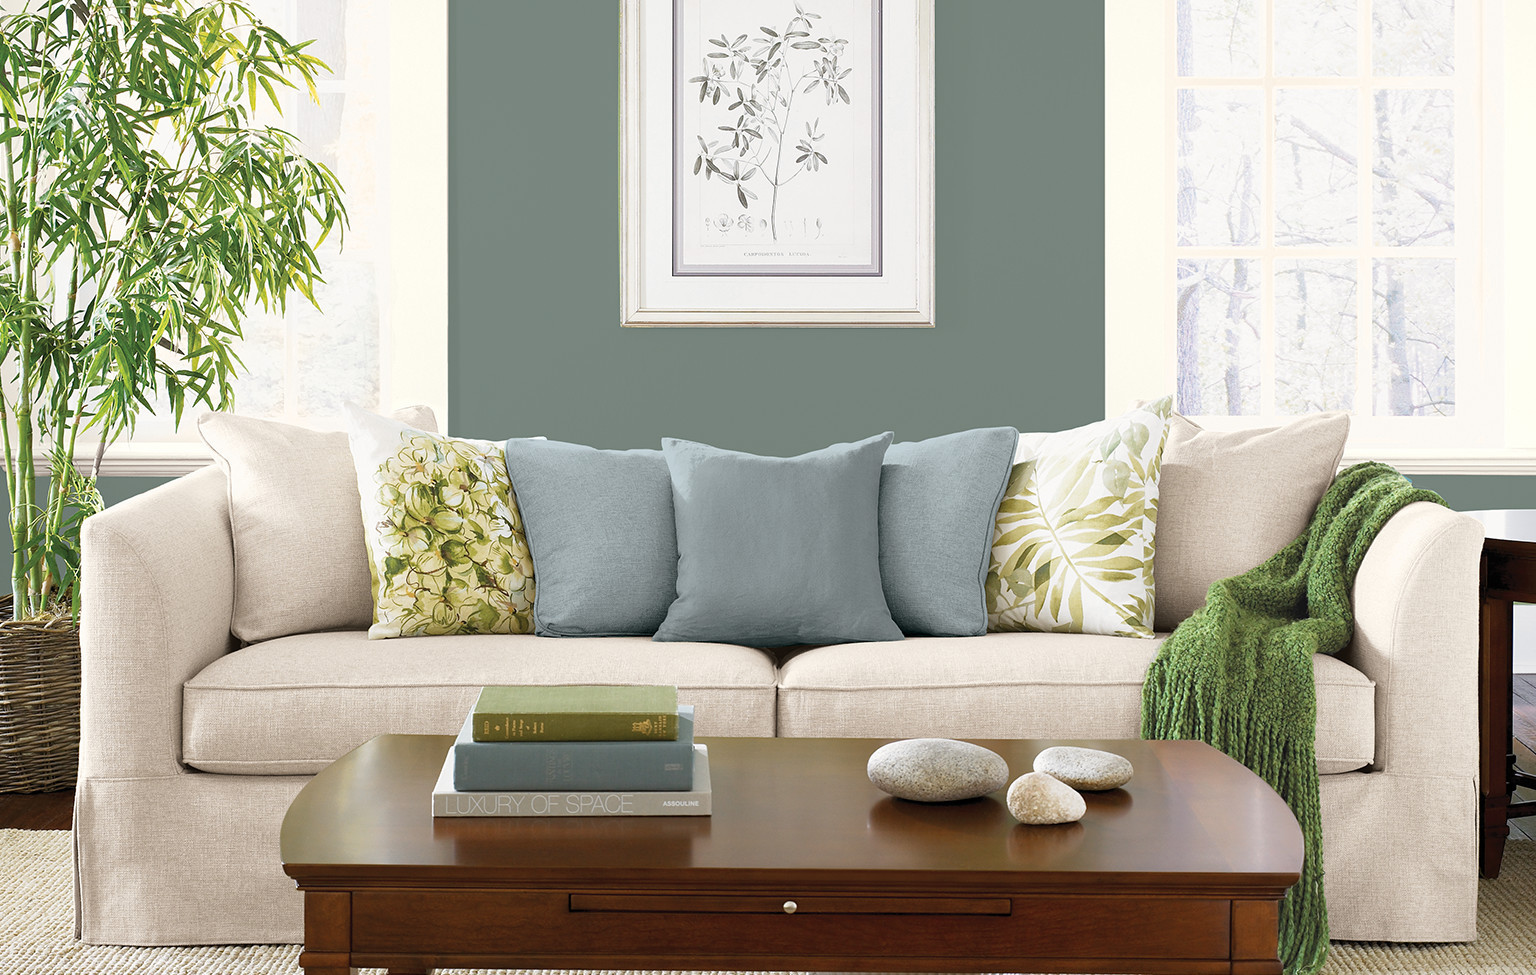 Best ideas about Best Living Room Colors . Save or Pin Living Room Colors 2017 Now.